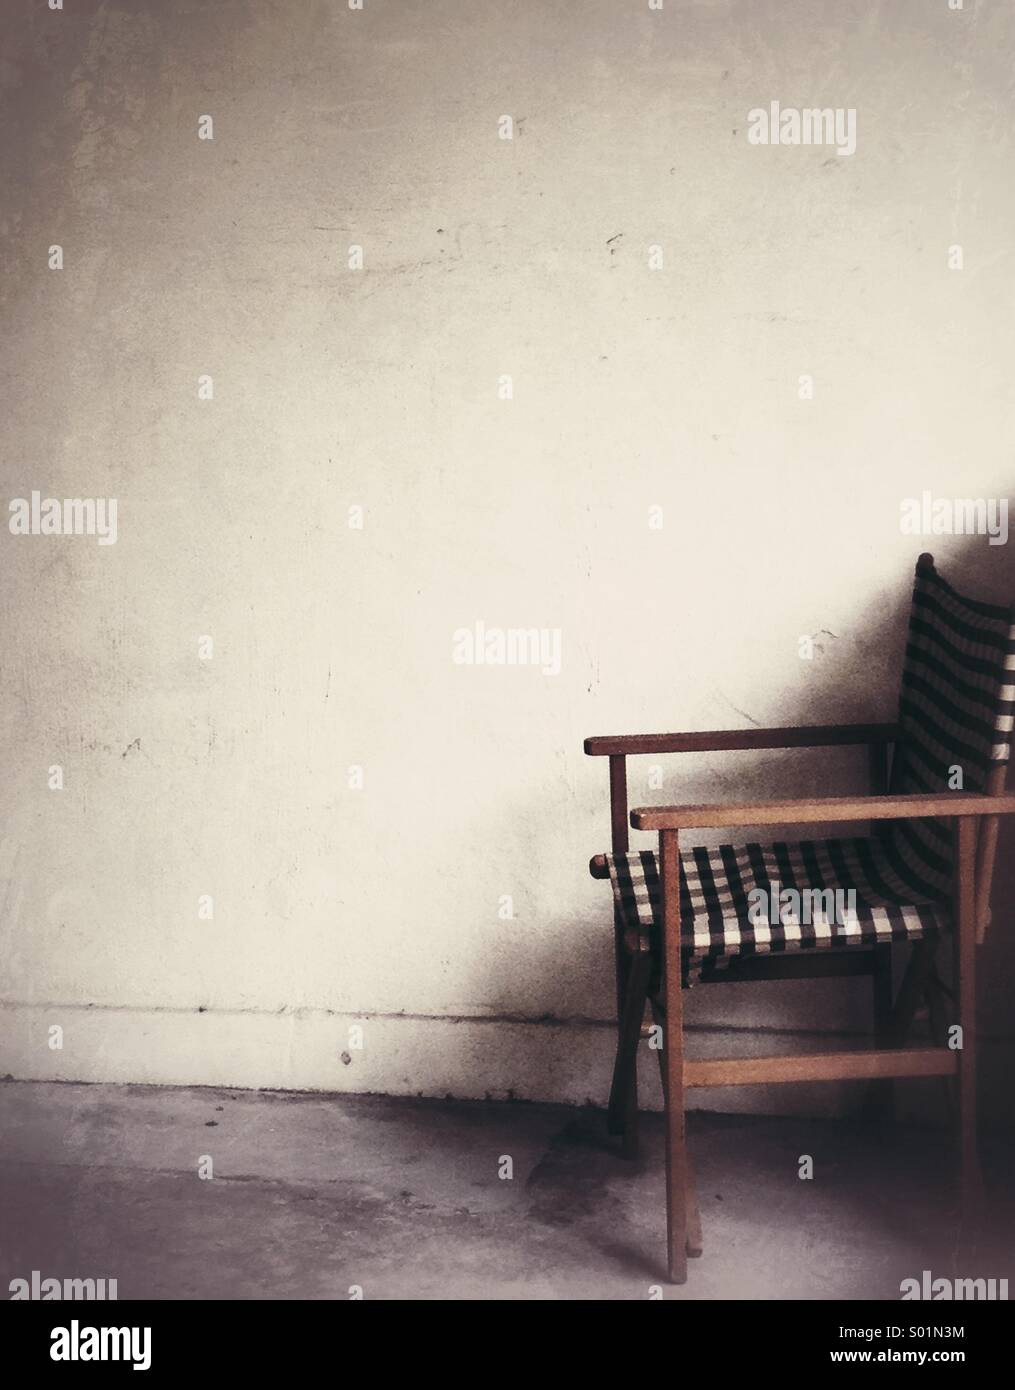 Chaise solitaire Photo Stock